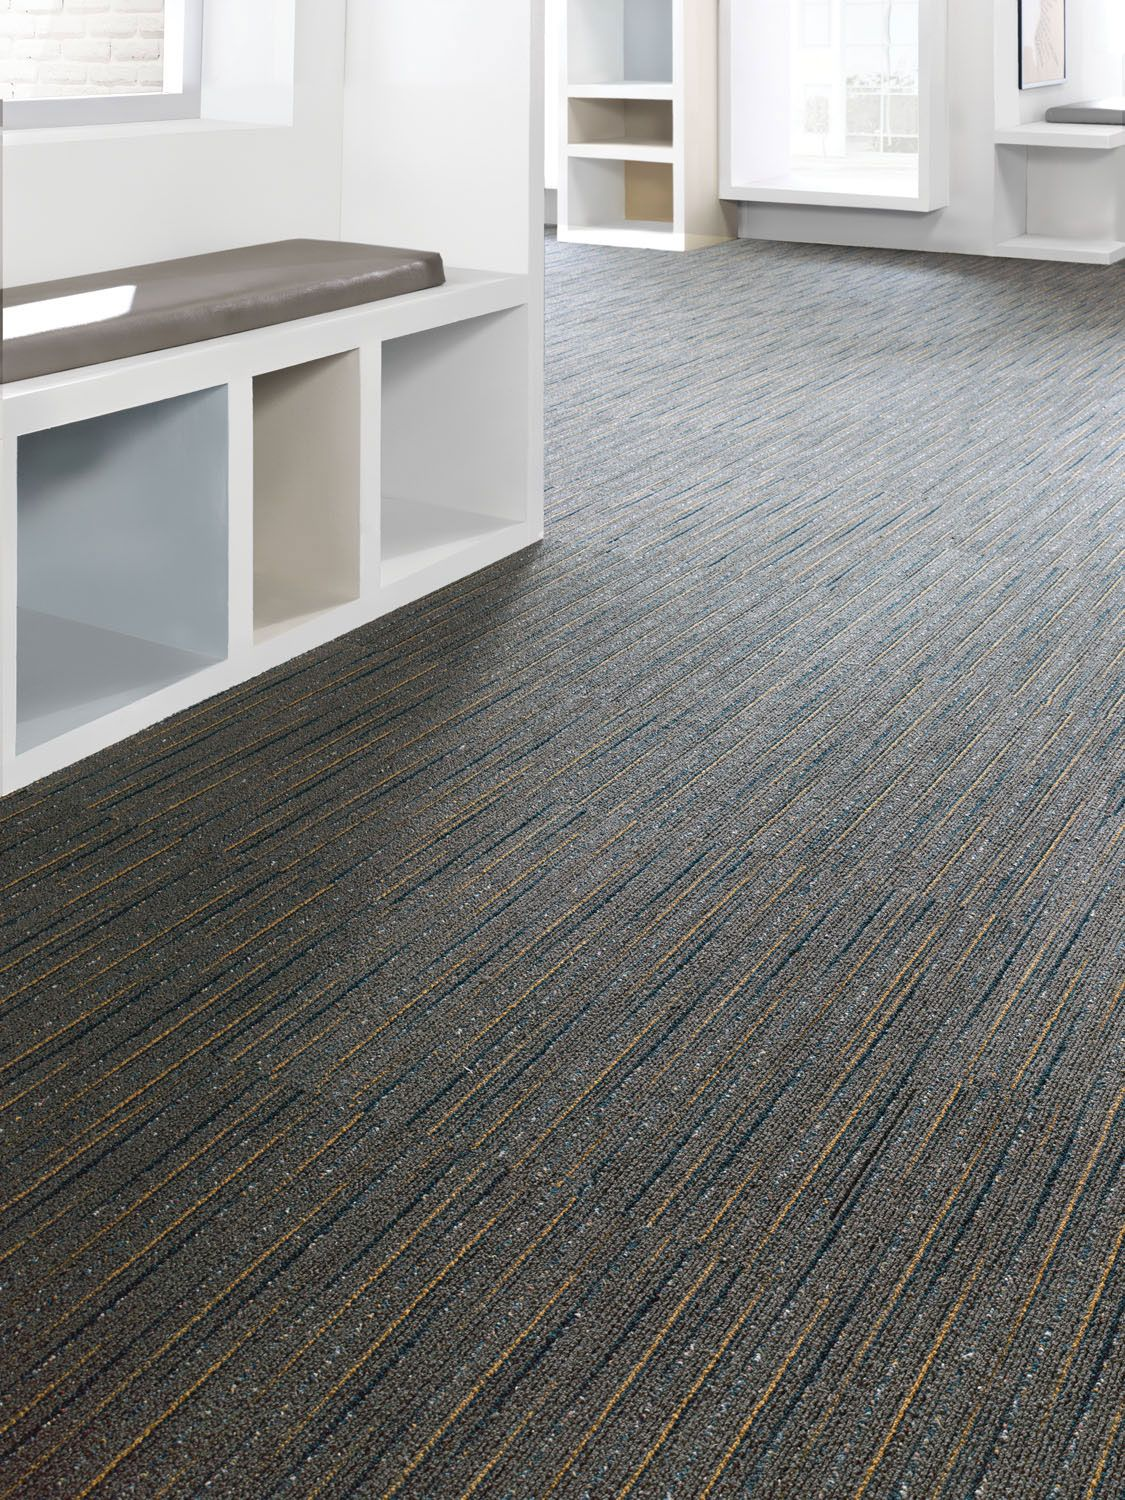 Mohawk Group Commercial Flooring Woven Broadloom And Modular Carpet Retail Store